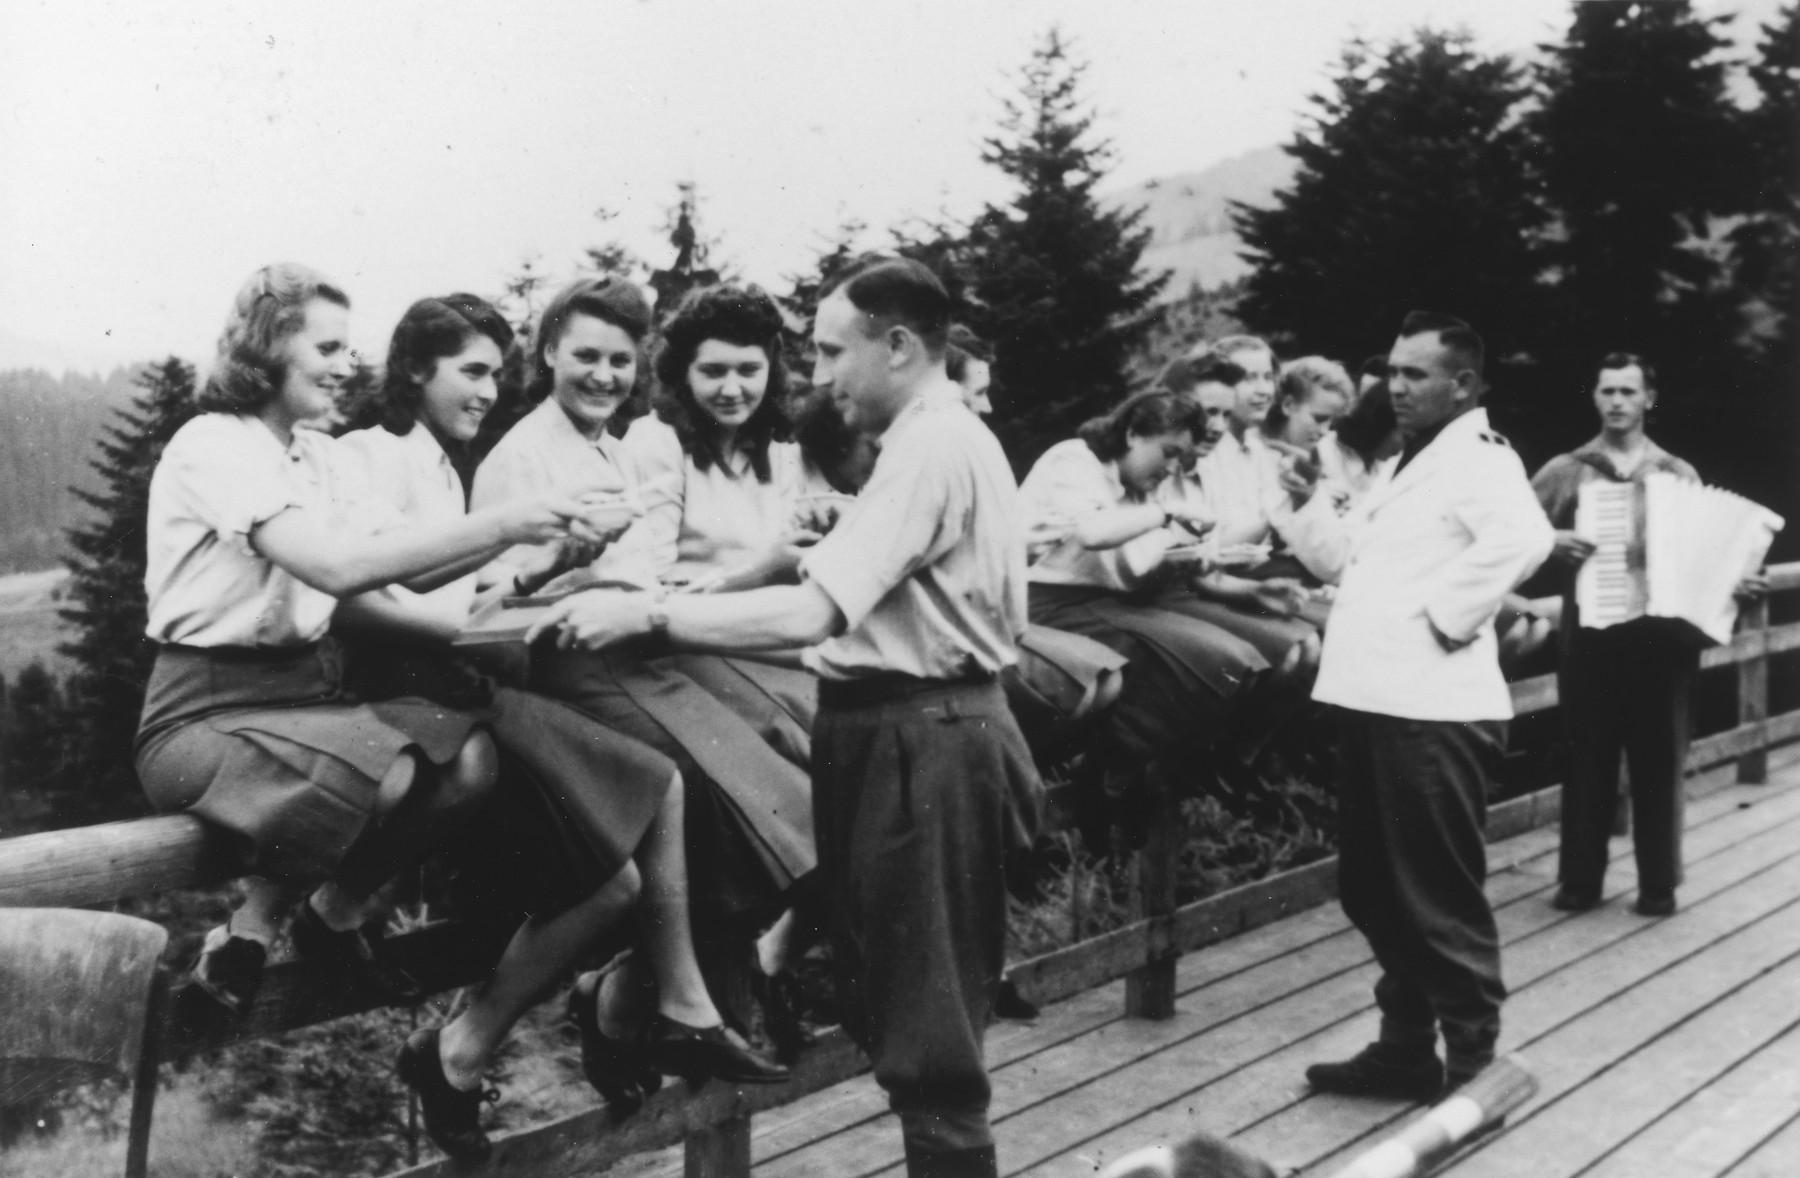 """Members of the SS Helferinnen (female auxiliaries) sit on a fence railing in Solahuette as Karl Hoecker passes out bowls of blueberries.  In the background is a man playing the accordion.   The original caption reads """"Hier gibt es Blaubeeren"""" (there are blueberries here)."""